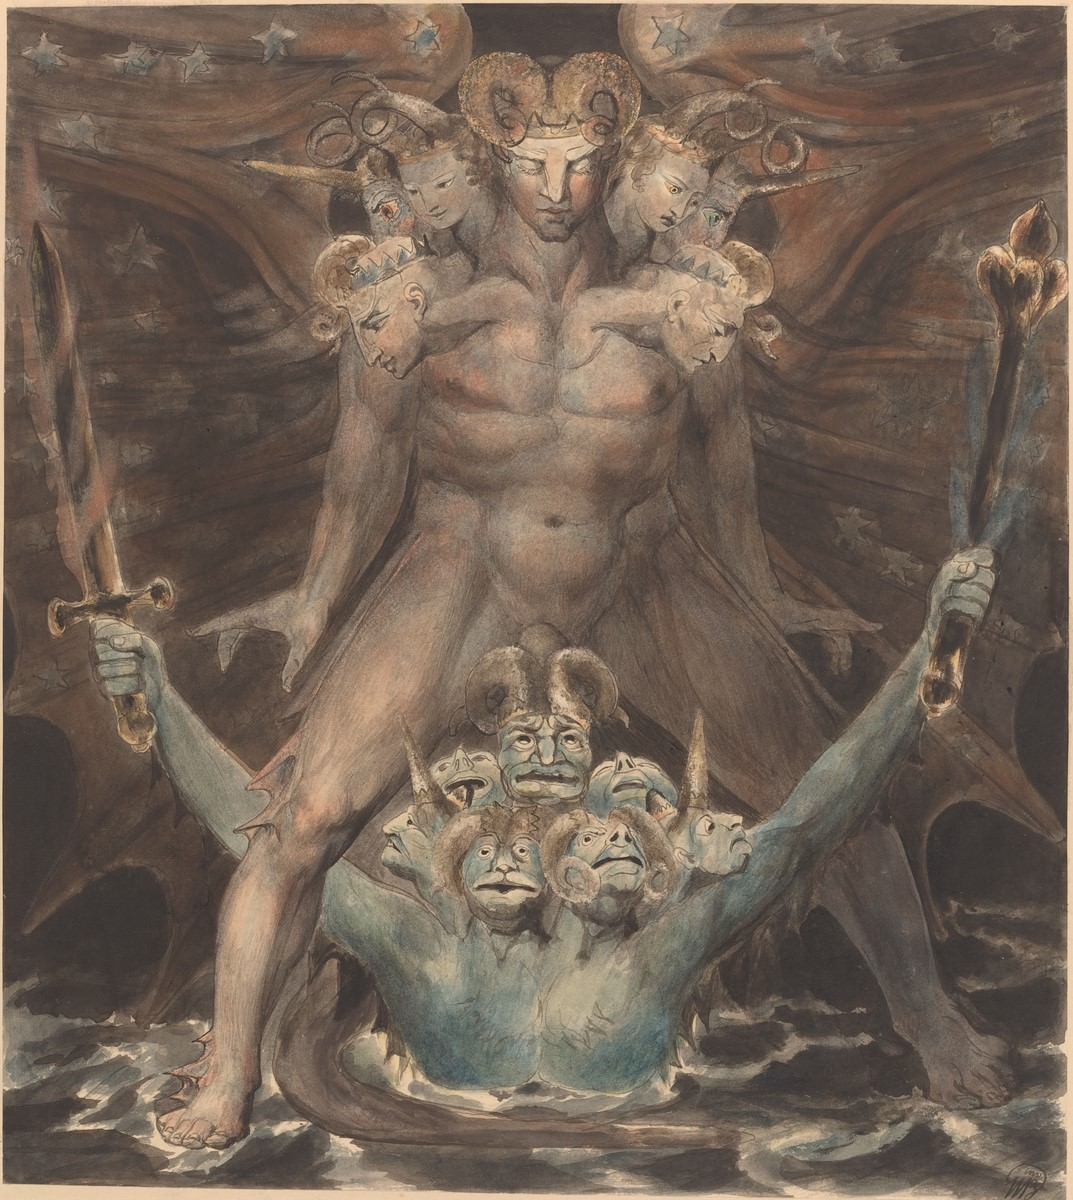 The Great Red Dragon and the Beast from the Sea, 1805. William Blake. National Gallery of Art, Washington. Coleção Rosenwald.